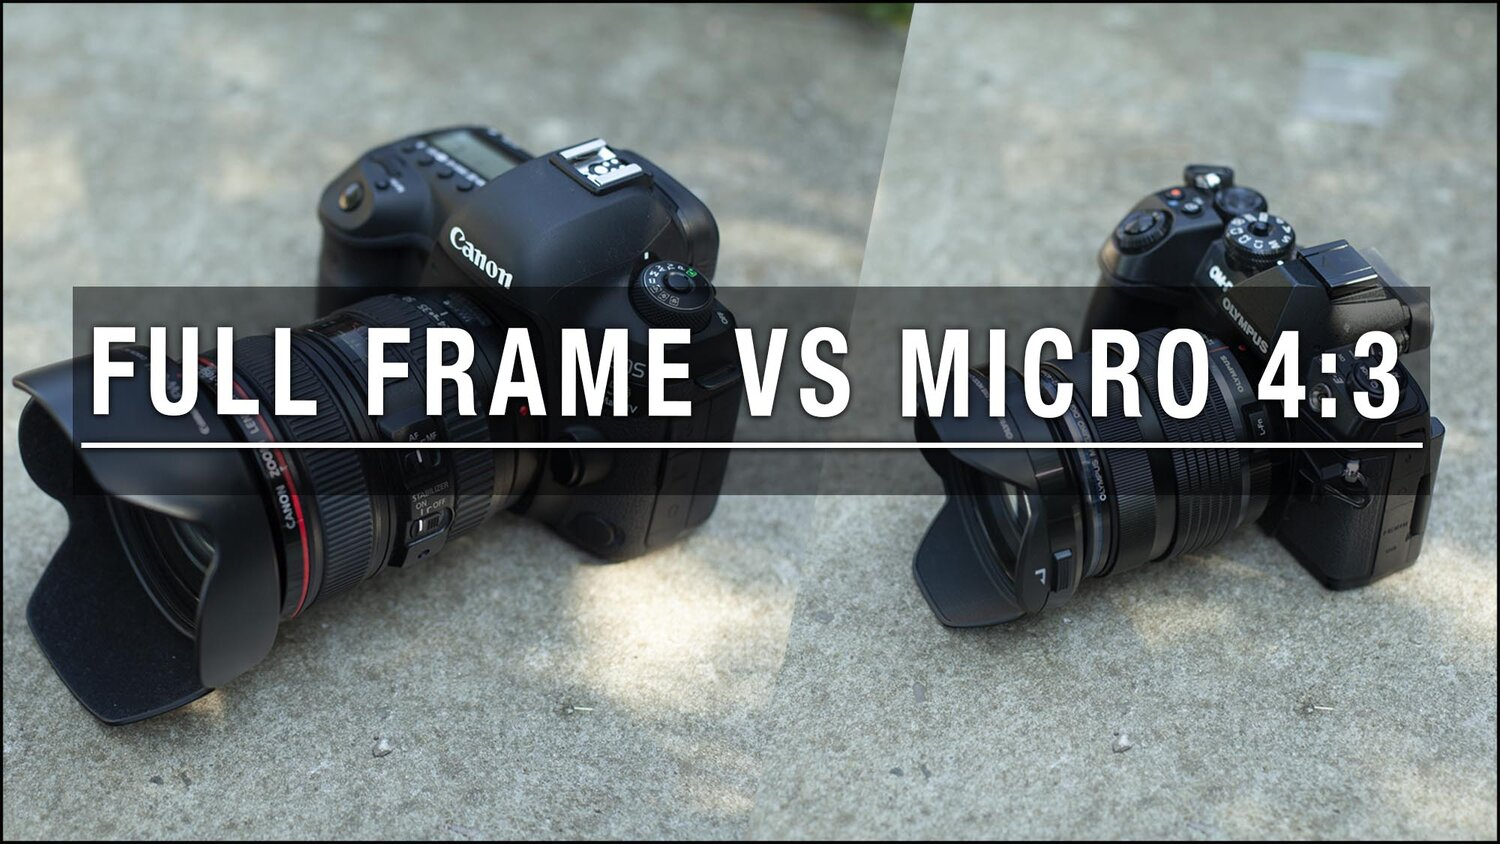 Full Frame vs Micro 4:3 – Where It Matters Most